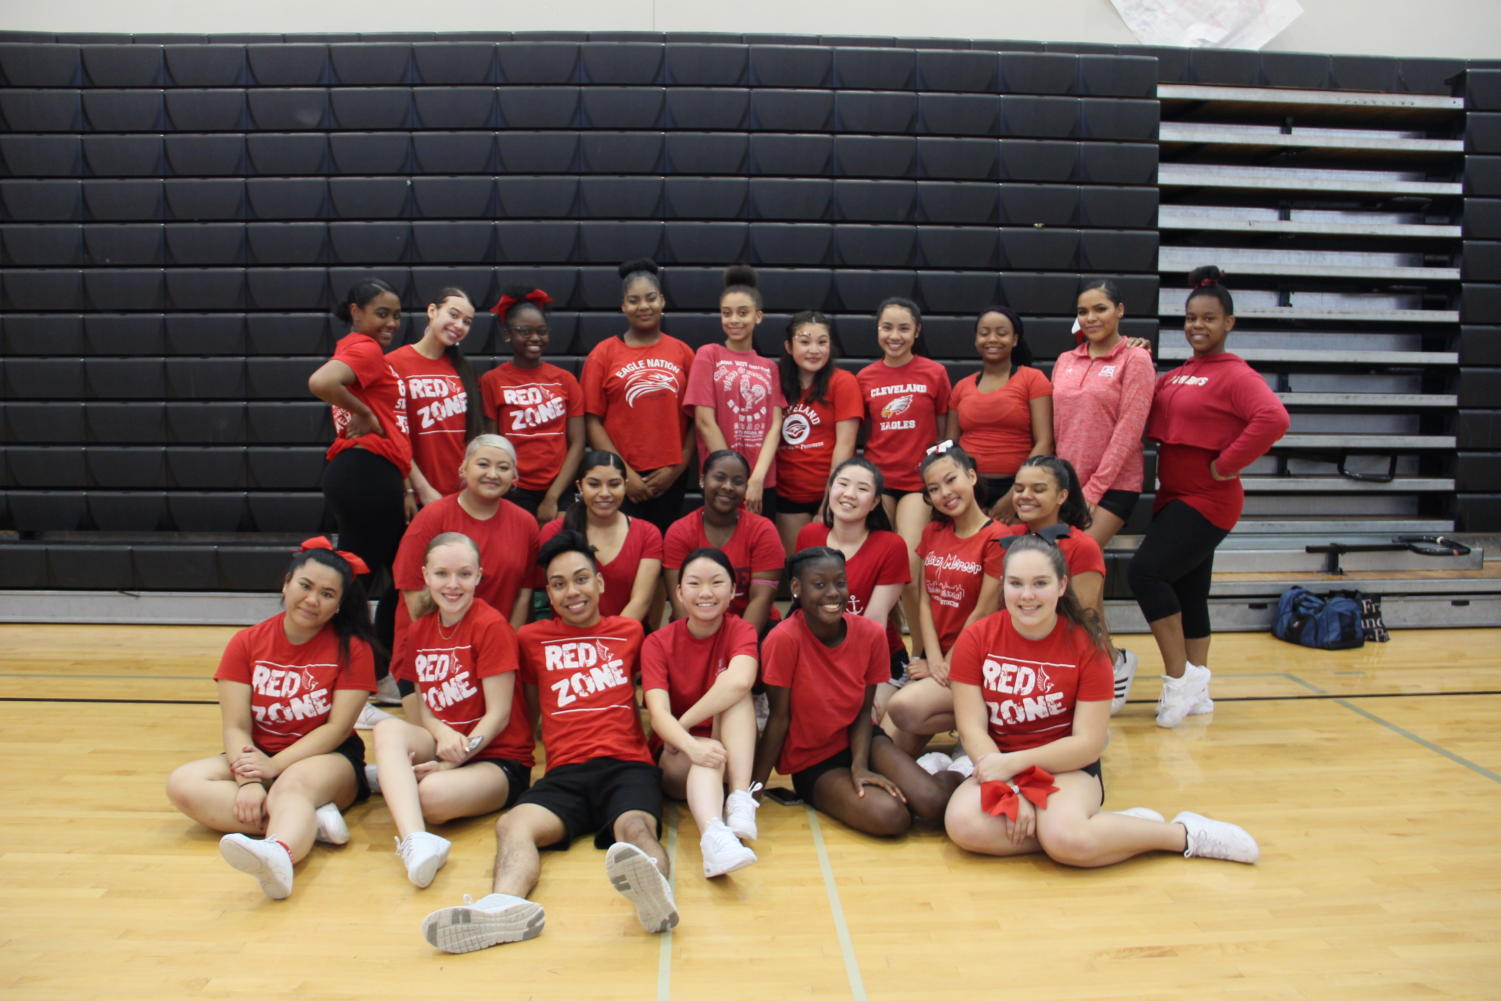 The 2018-19 cheer squad, front row, left to right: Keeley Saelee, Ryanne Jones, Ernesto Tugade, Ginger Huynh, Amaree Bates, Virginia Lewis. Second row: Lana Saephanh, Helen Martell Moya, Camryn Delgardo, Iaramae Calvi, Megan Louie, Parris Sanjose. Third row: Khaleea Best, Cindy Kieu, Jasmine Hendrix, Kira Pitts, Tommi Adams, Mai-Lee Tran, Alaja-Rain Logan, Deja Blankenship, Faith Capers.